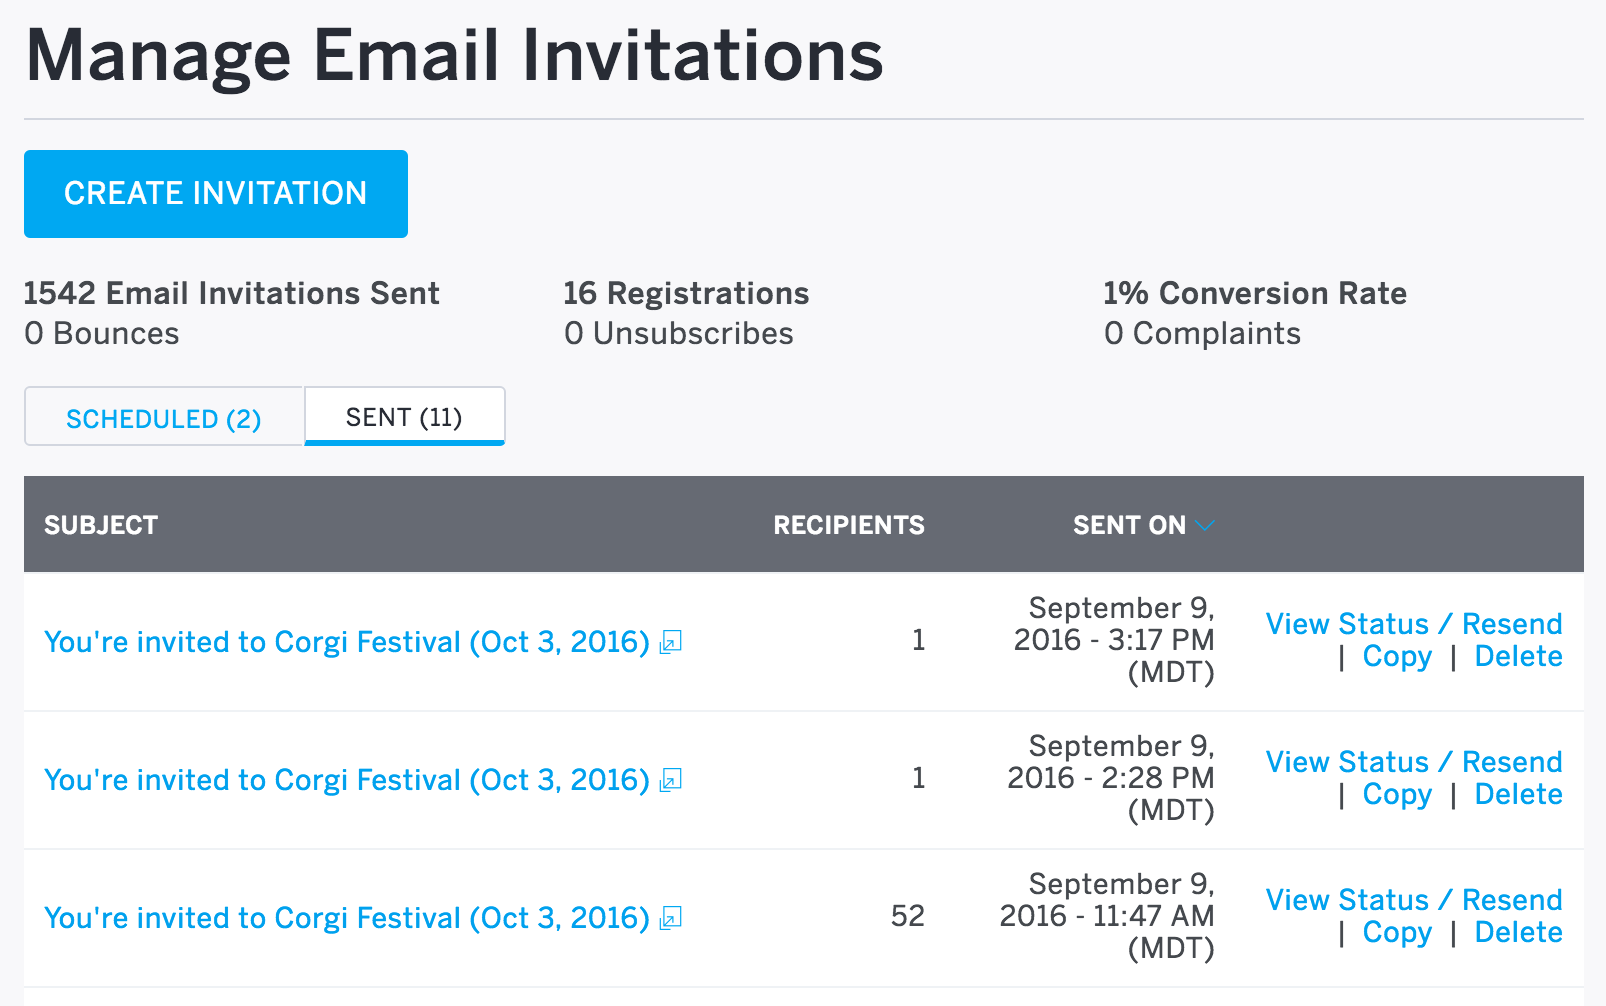 When clicking Email Invitations on the left-hand side of the page, Manage email invitations is the first page you'll see if you've already scheduled or sent invitations.